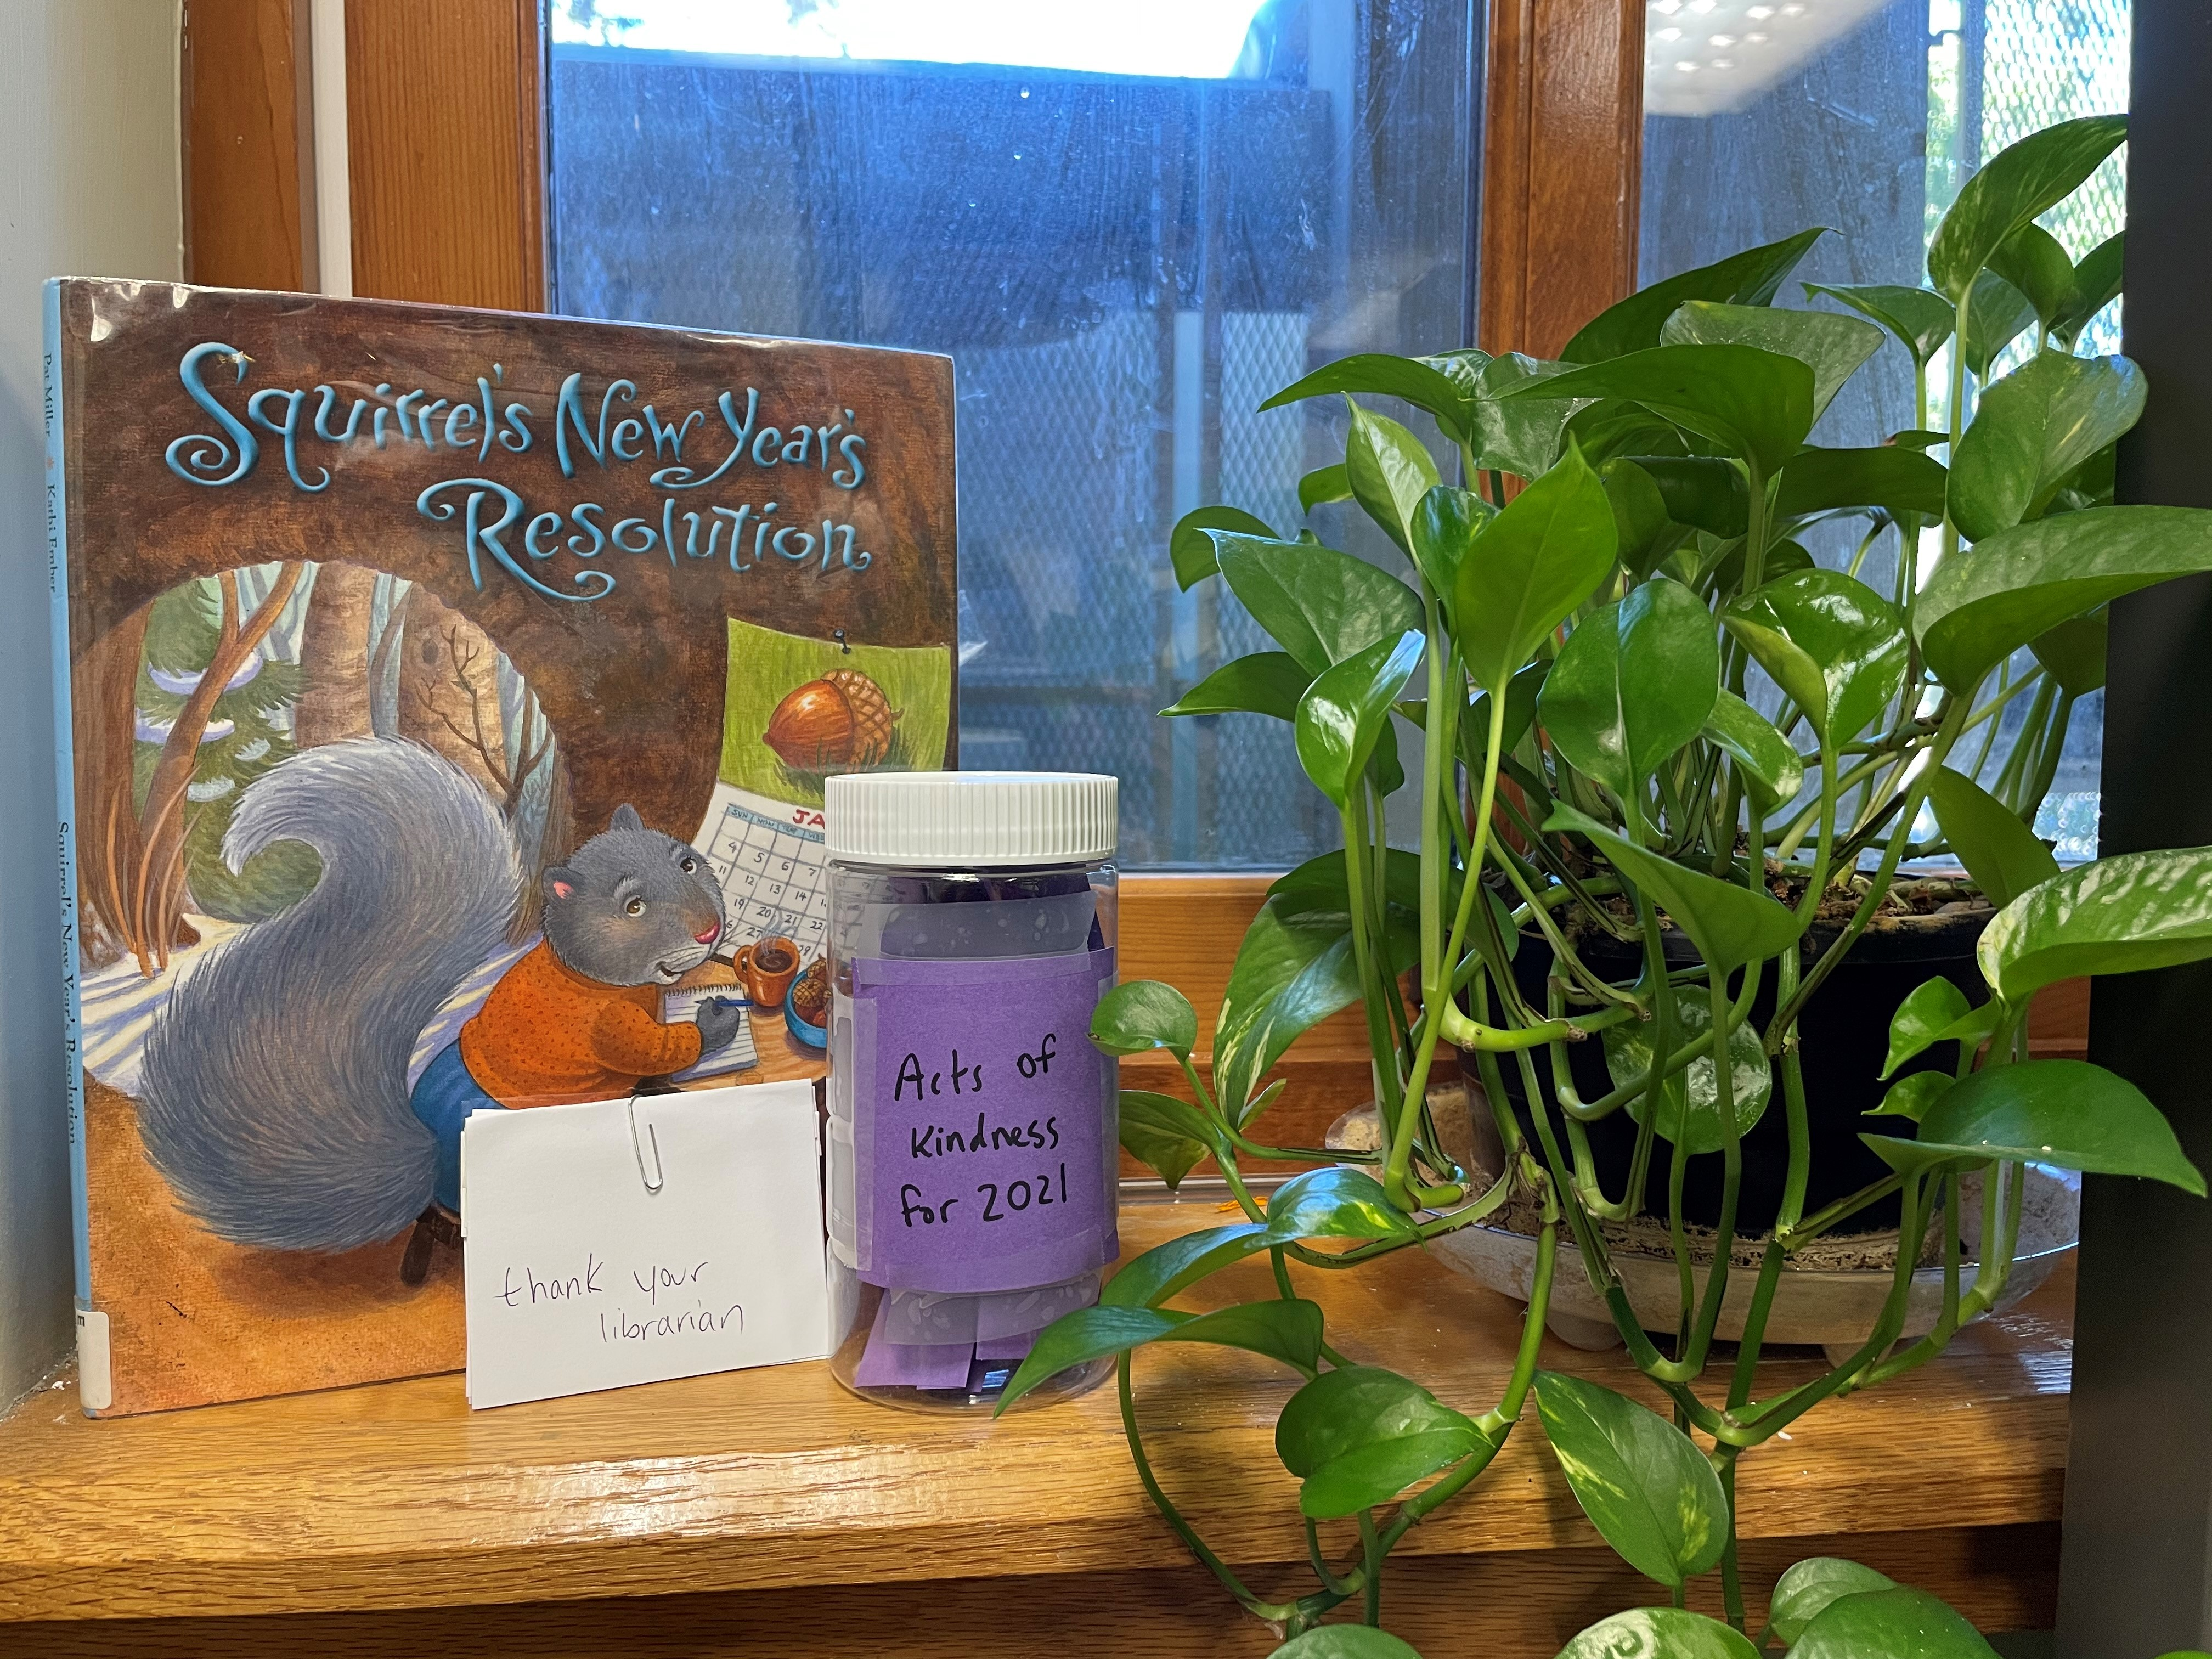 """Picture of book """"Squirrel's New Year's Resolutions"""" with jar labeled """"Acts of Kindness for 2021"""" and a plant"""